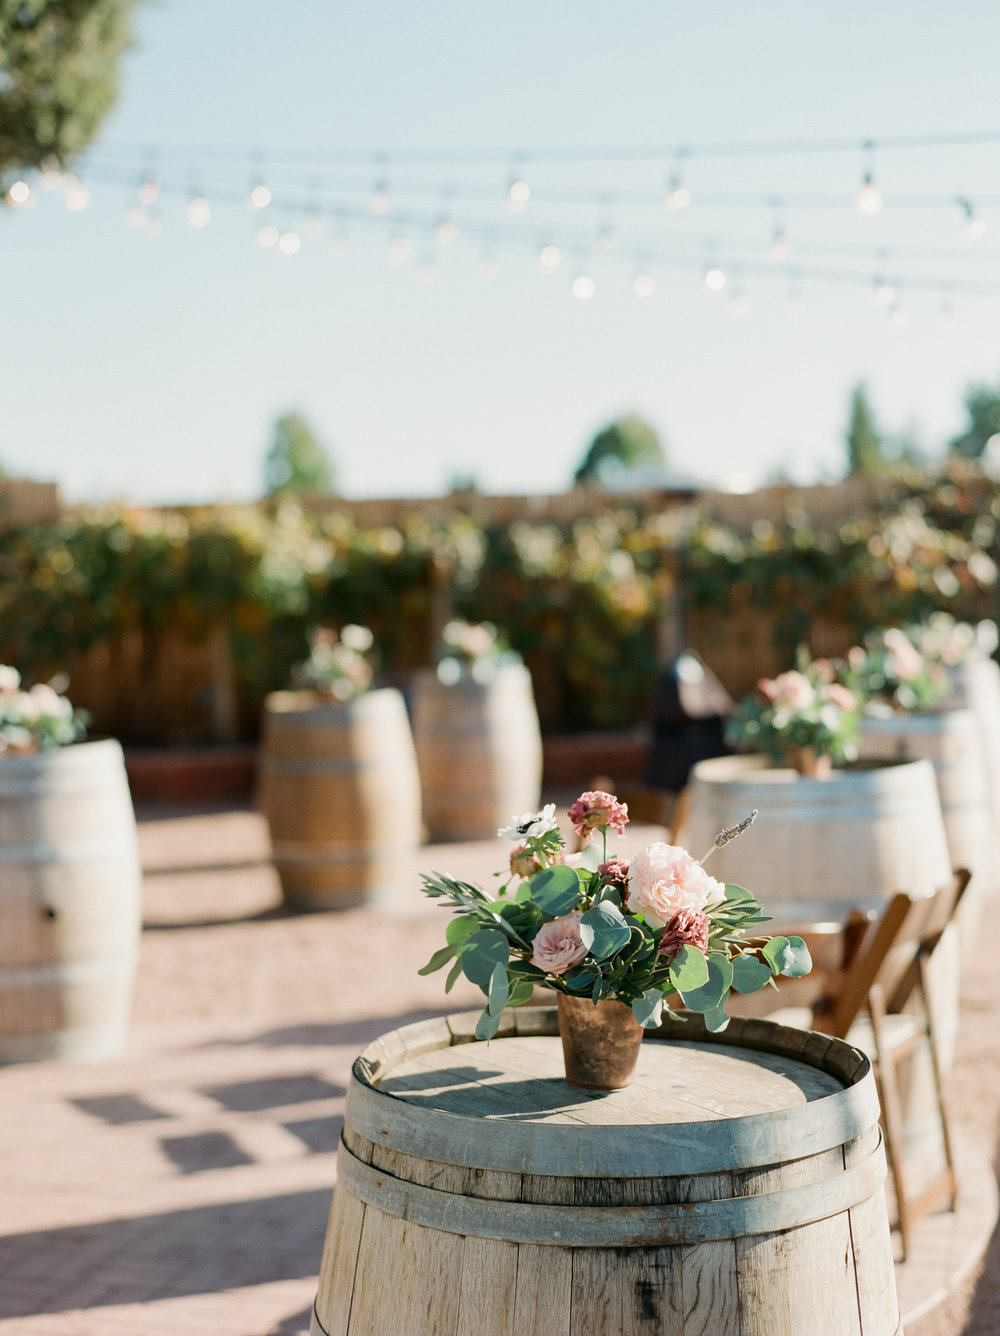 An Intimate Sedona Wedding Nestled in the Arizona Red Rocks  - Tremaine Ranch - AZ Arizona Wedding & Event, Vintage, Furniture, Tableware, & Specialty Rentals in Phoenix, Tucson, Flagstaff, Sedona, Tempe, Chandler, Mesa, Gilbert, Prescott, Payson 587.jpg